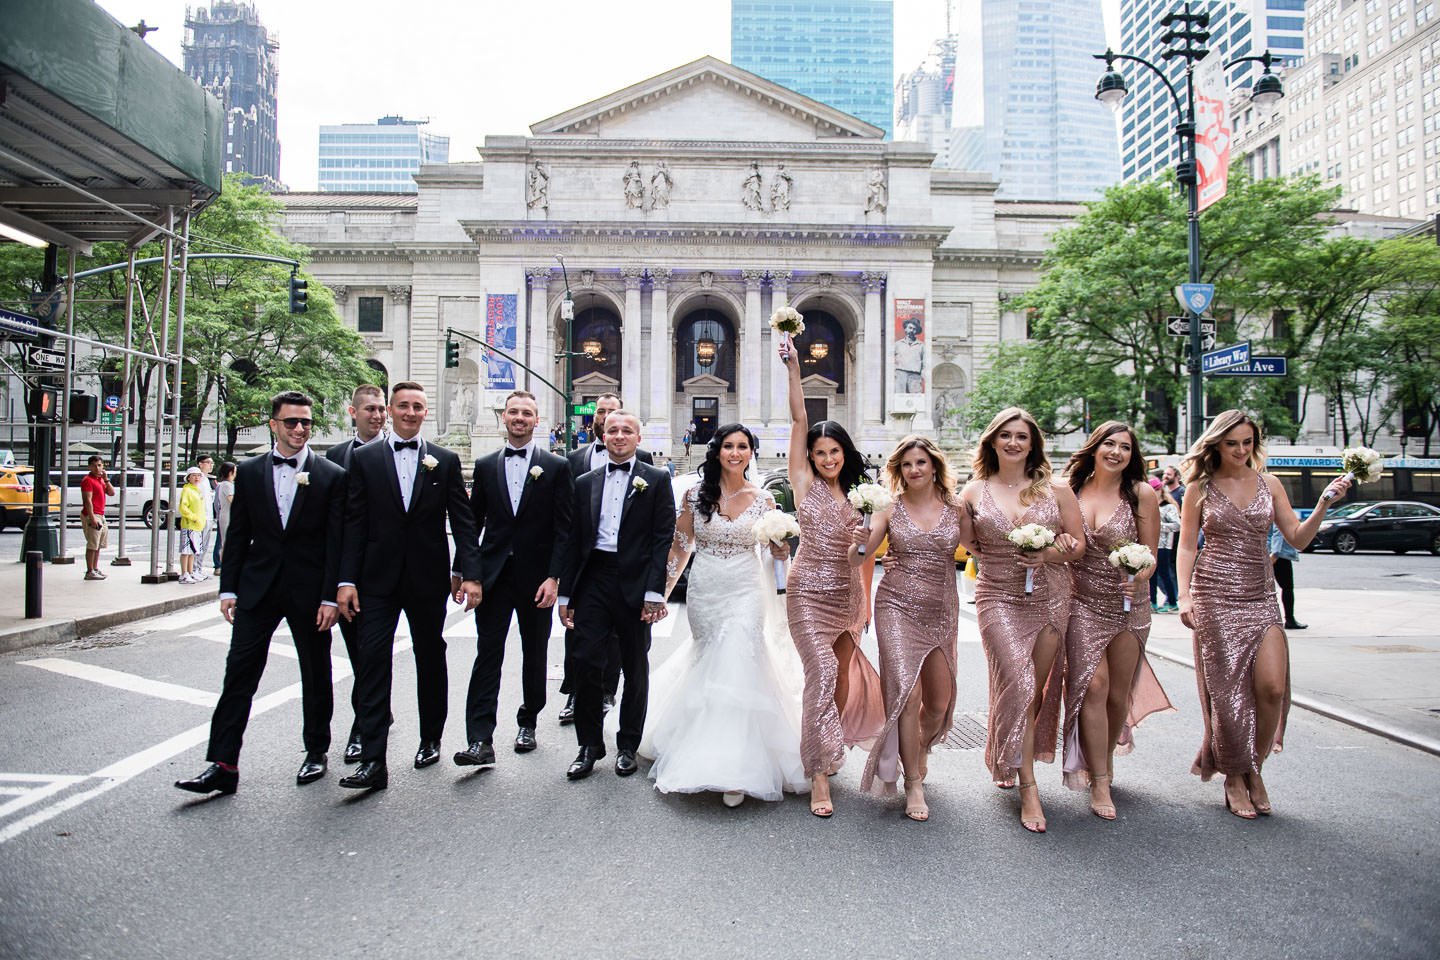 new york public library wedding bridal party walk on the street